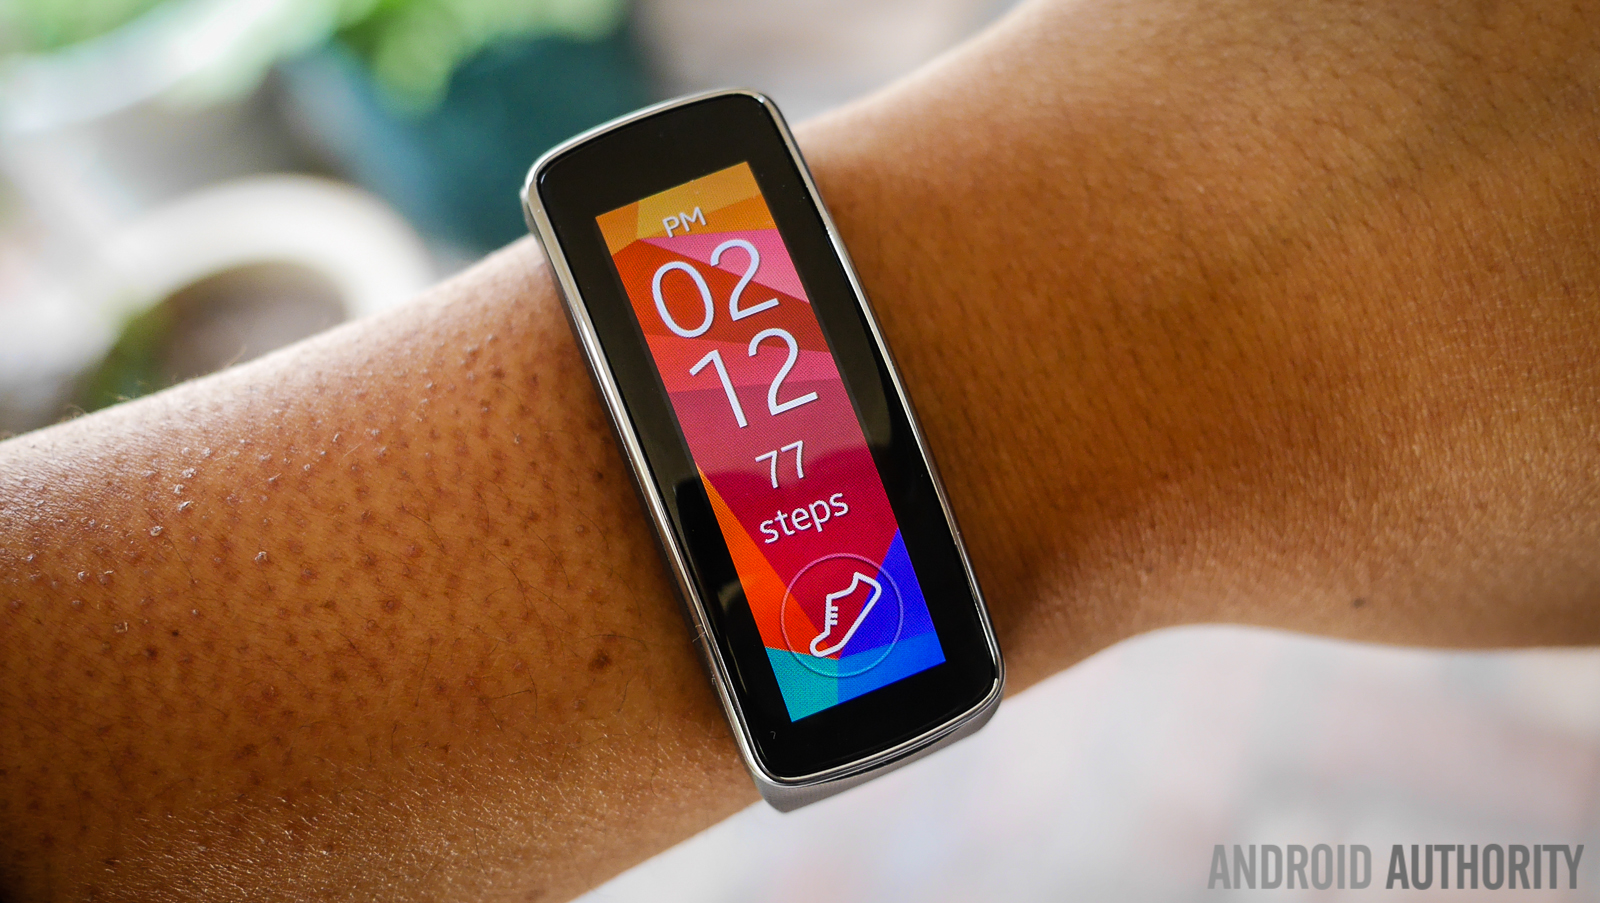 samsung gear fit aa (8 of 20)